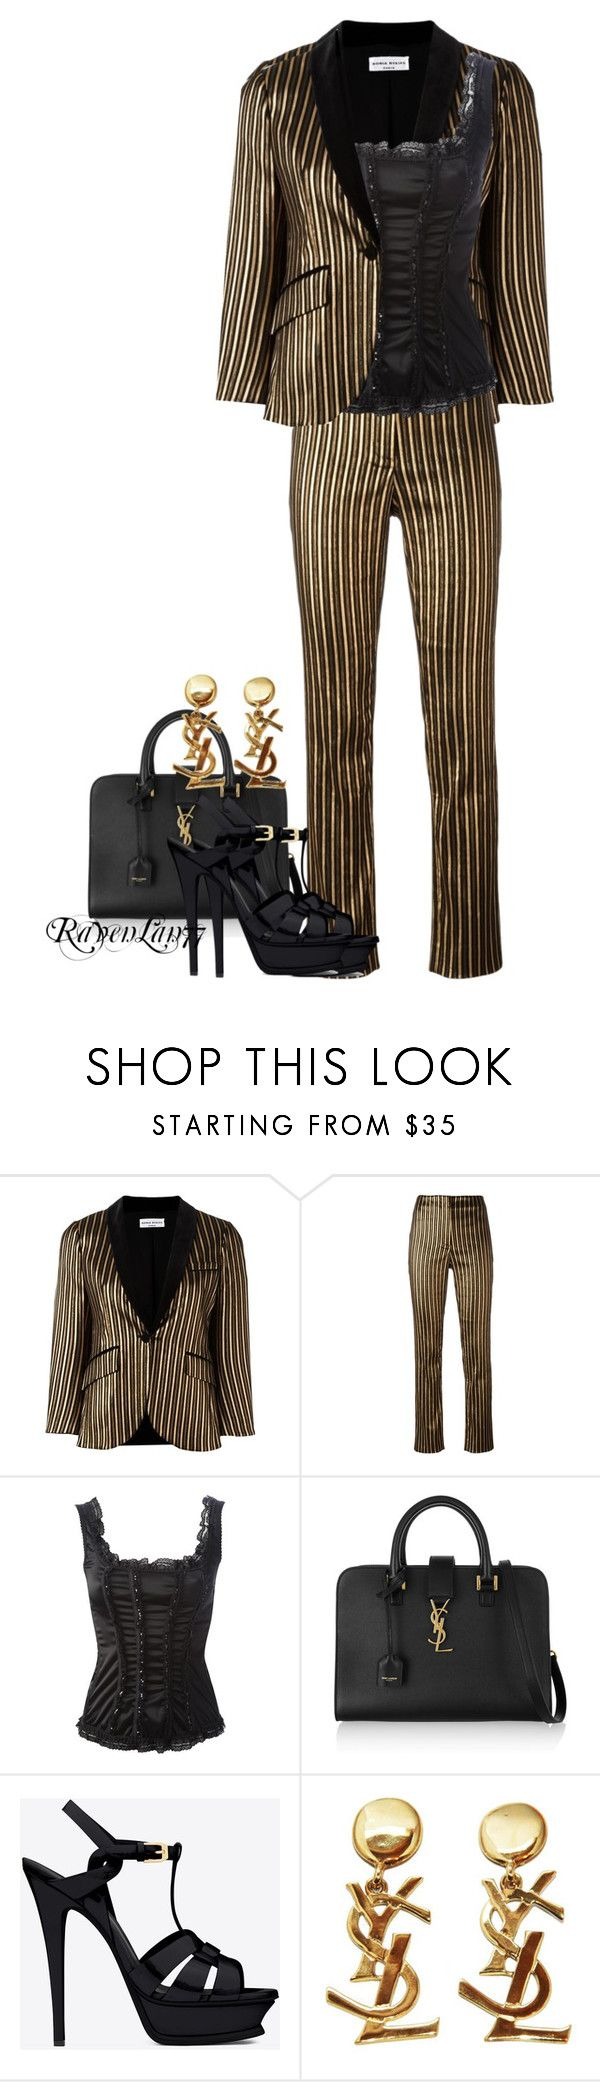 """""""Gold and Black Pantsuit"""" by ravenlancaster ❤ liked on Polyvore featuring Sonia Rykiel, Galline Regine and Yves Saint Laurent"""